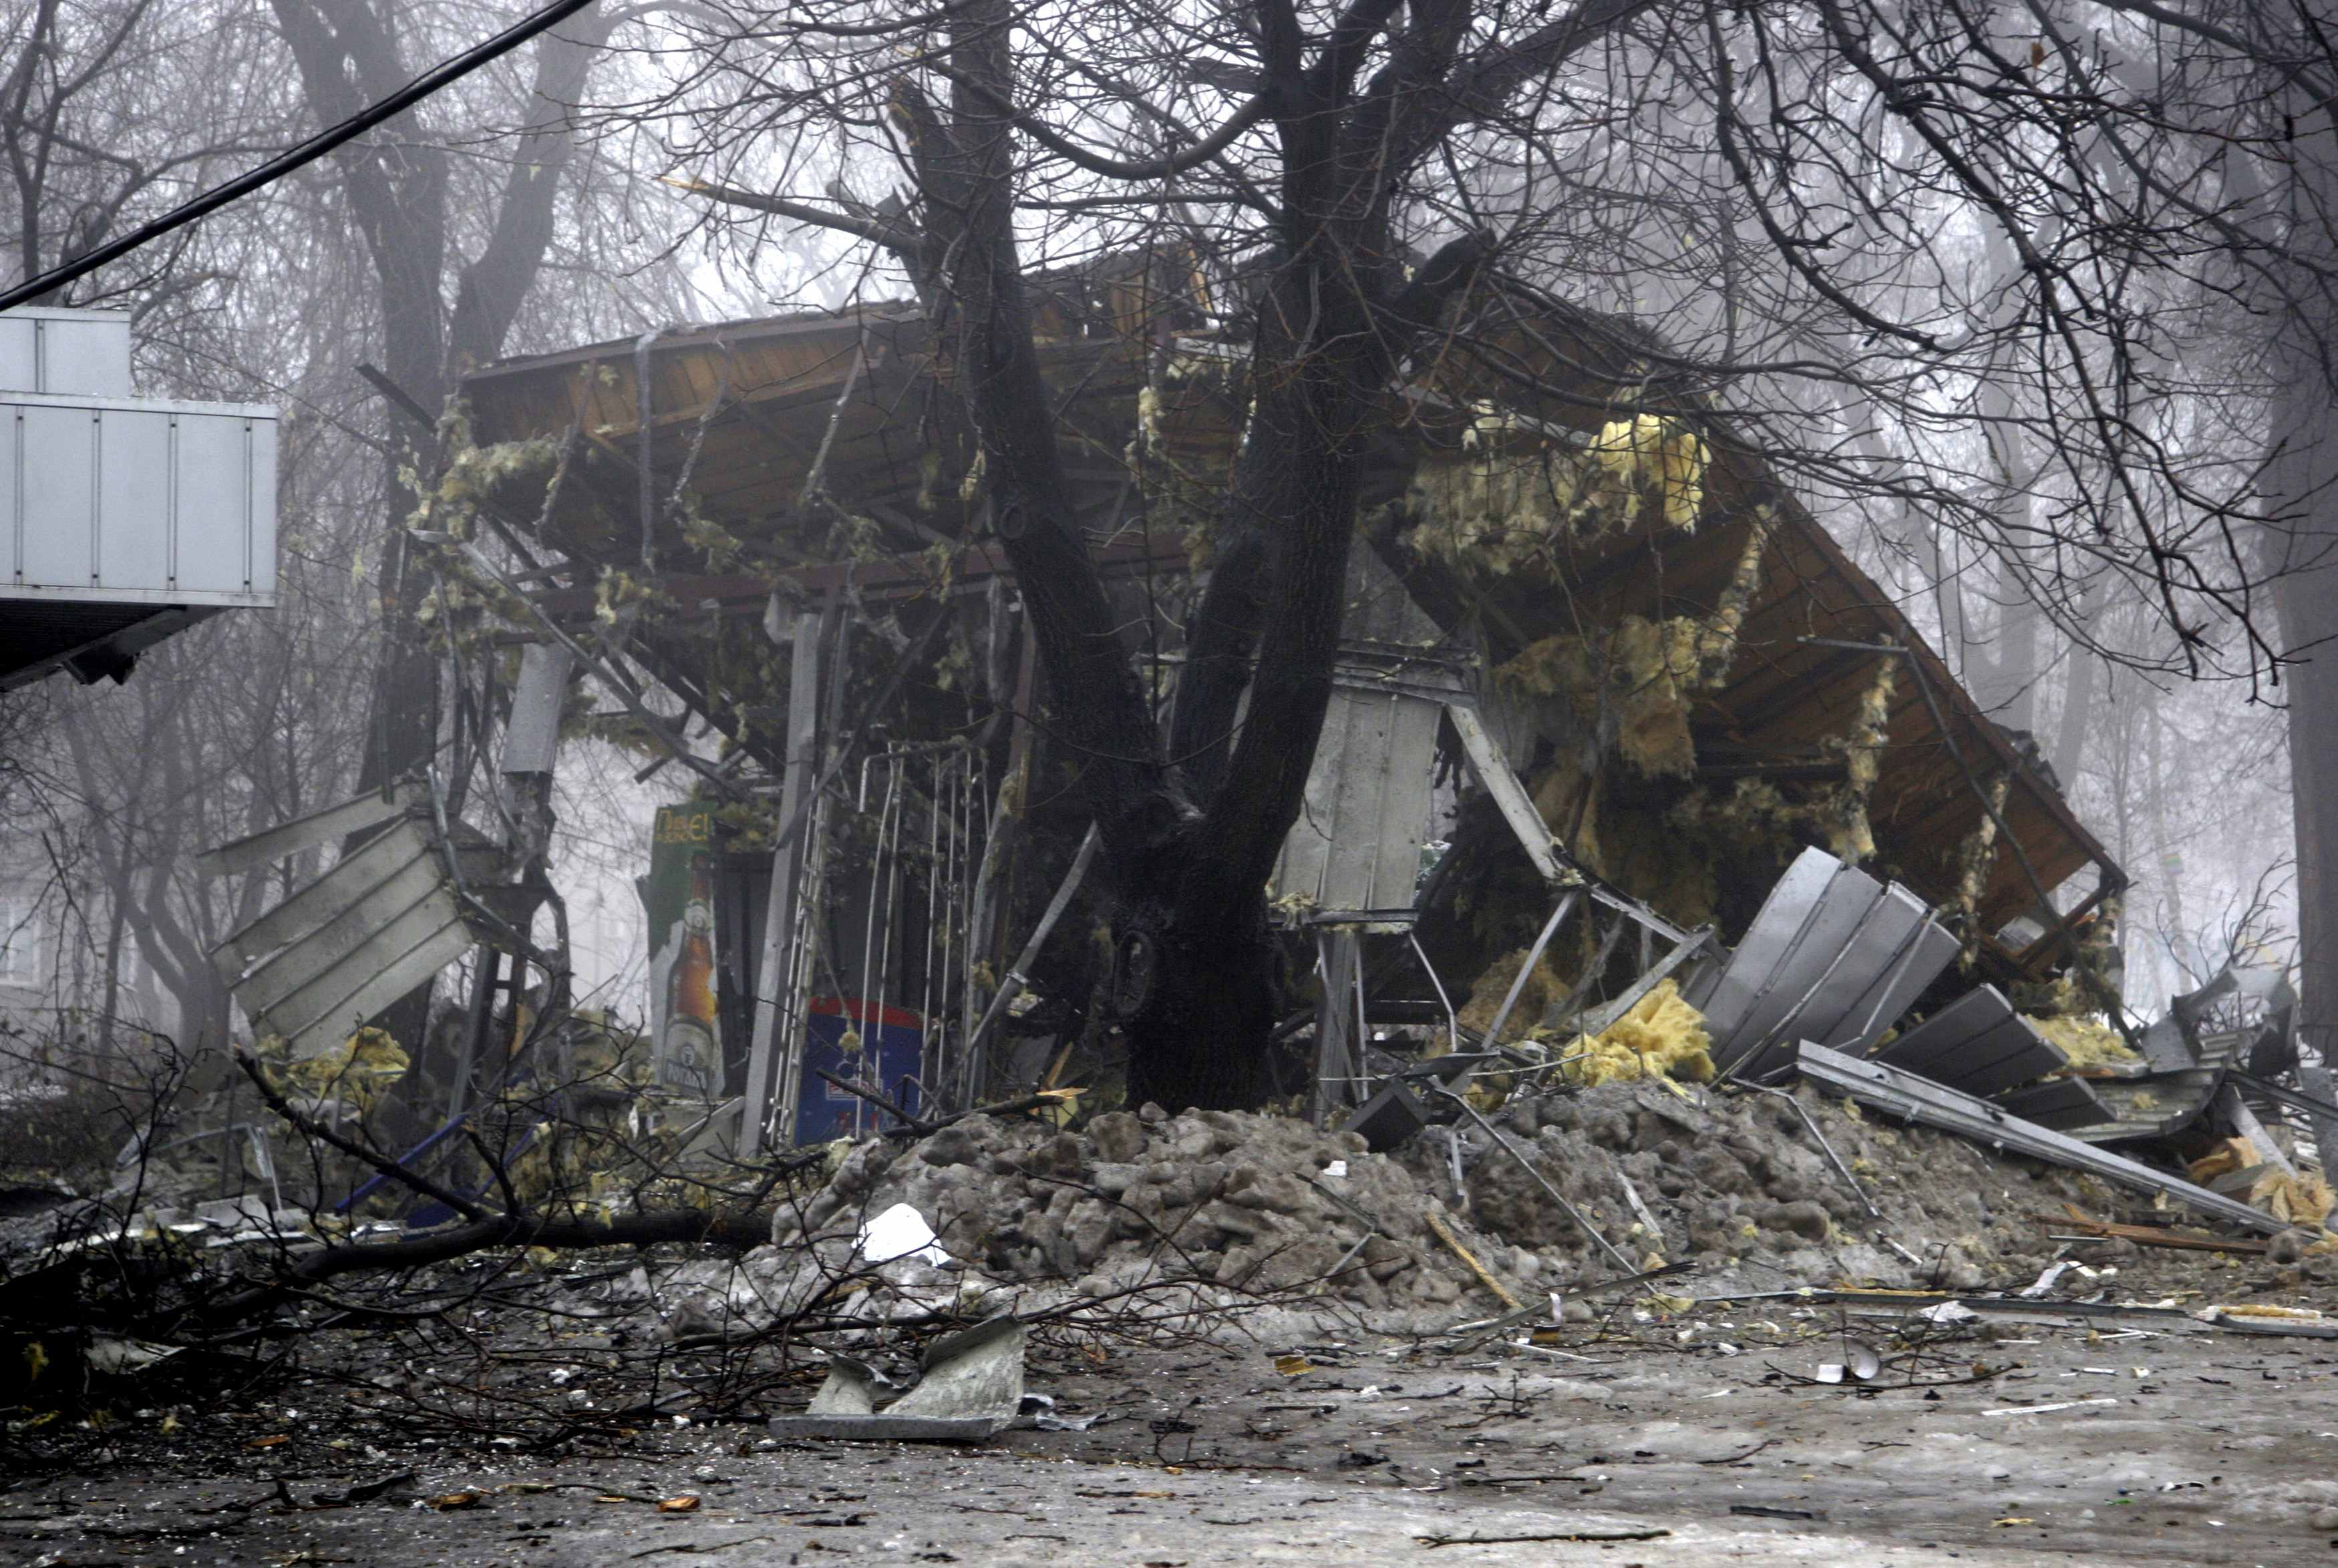 At least 6 civilians killed in shelling attack in Donetsk, east Ukraine: Reuters witness